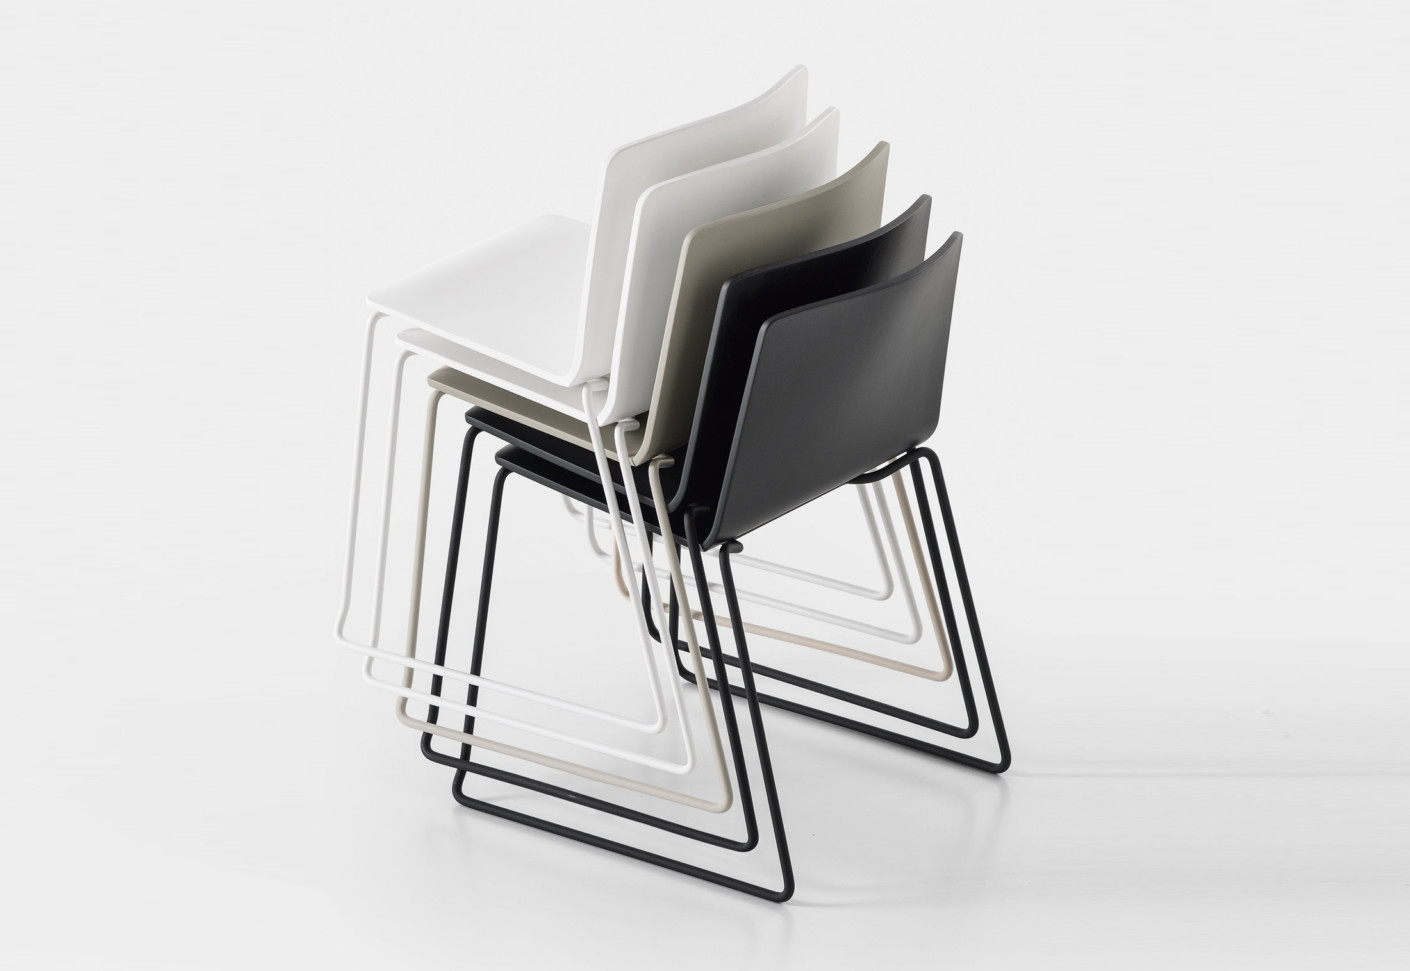 Rama for palau 2016 lounge chair - Rama For Palau 2016 Lounge Chair 73